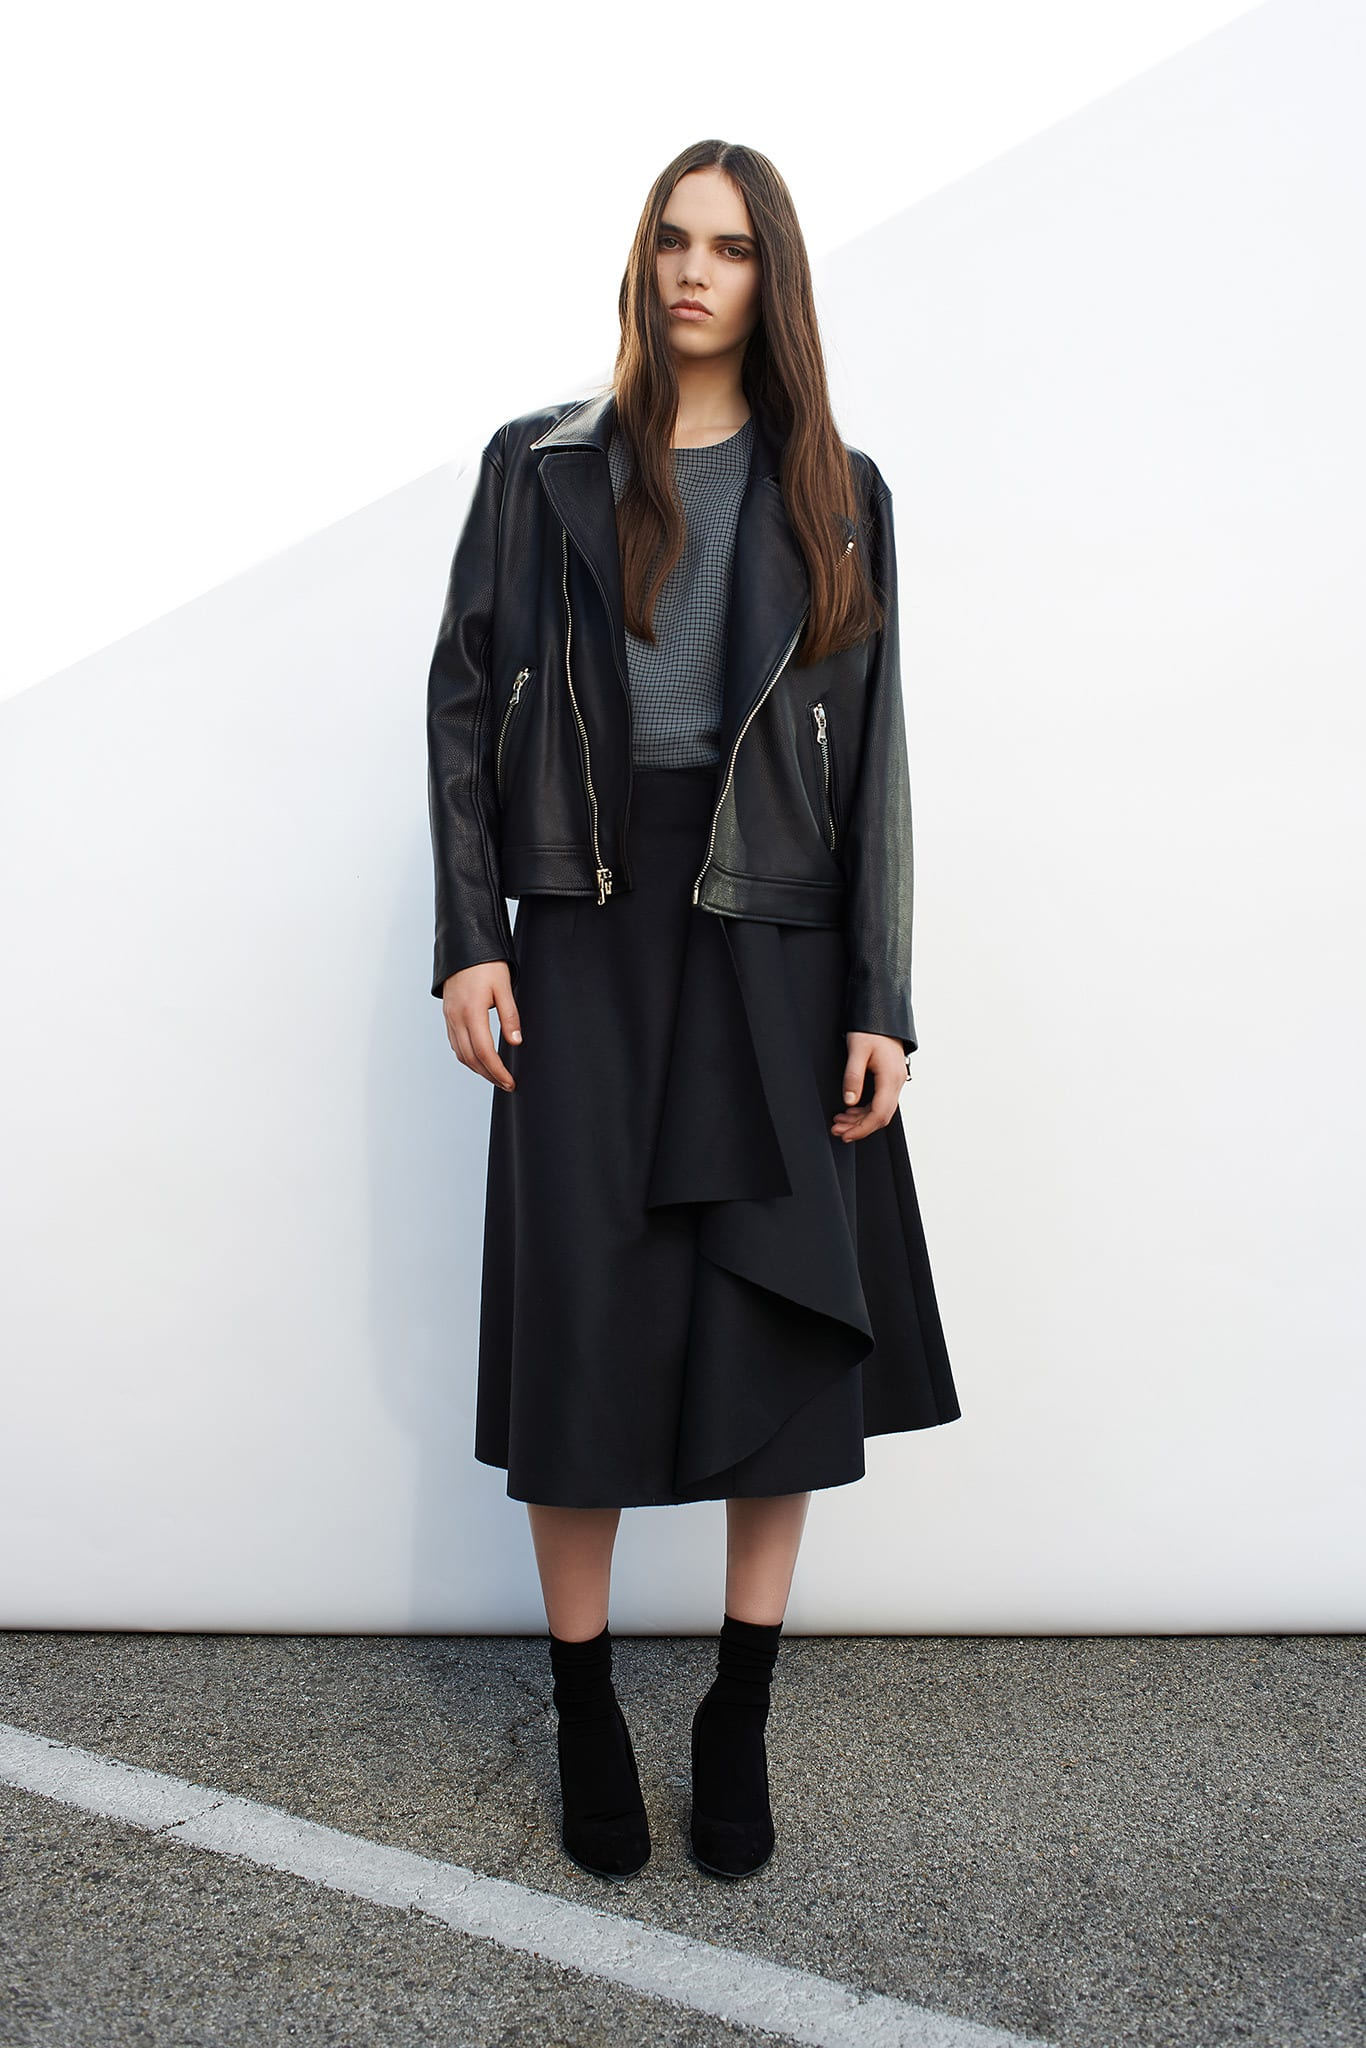 StyleAndMinimalism | Collection Best Bits | Cerre AW14 | Black leather biker jacket, midi skirt & top